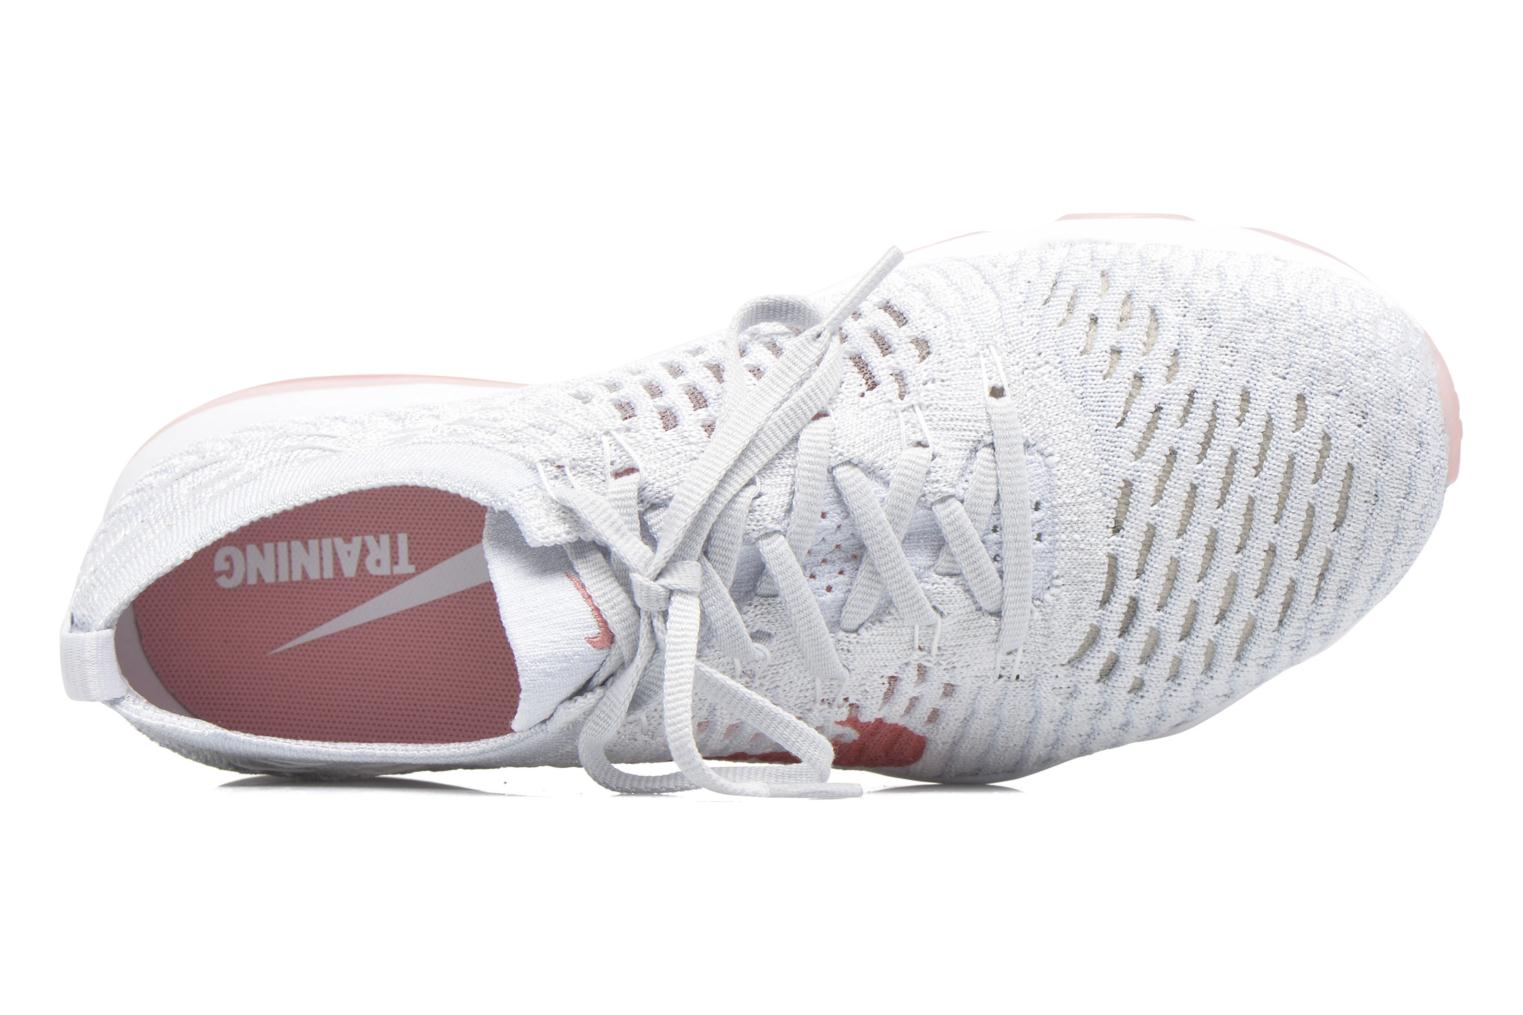 W Air Zoom Fearless Flyknit White/Bright Melon-Pure Platinum